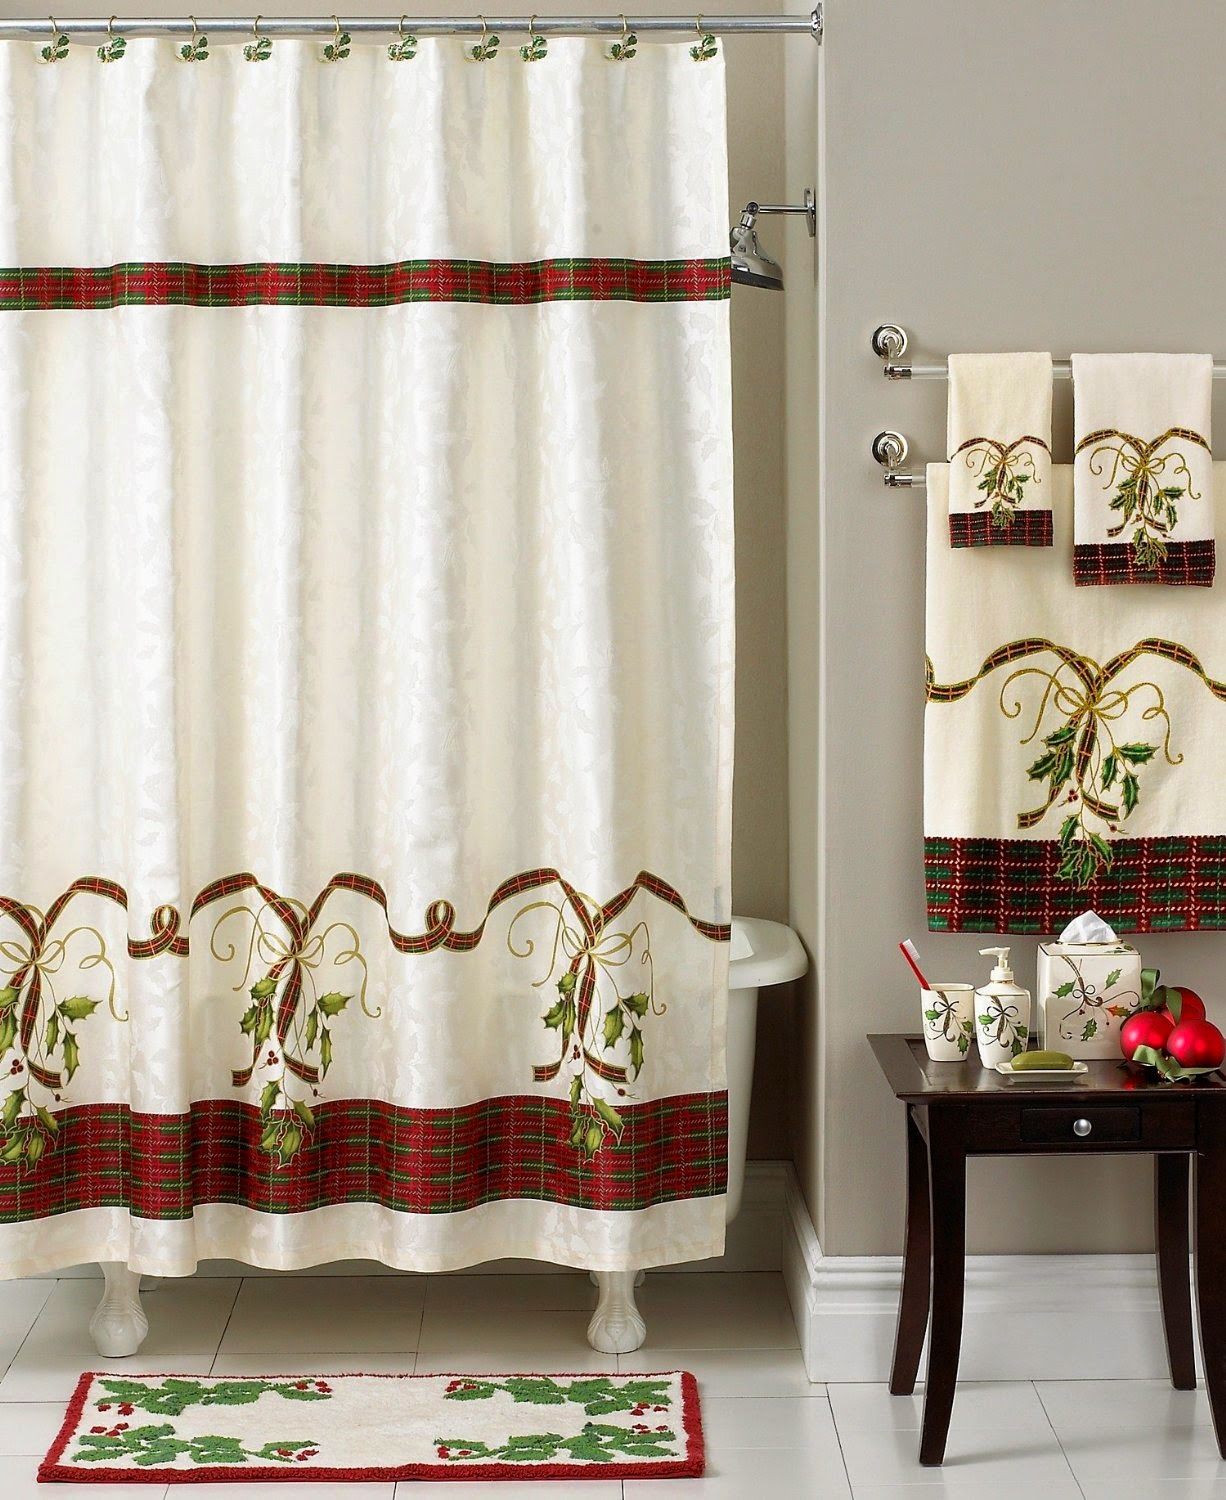 Christmas Shower Curtains - New Home Soulmates